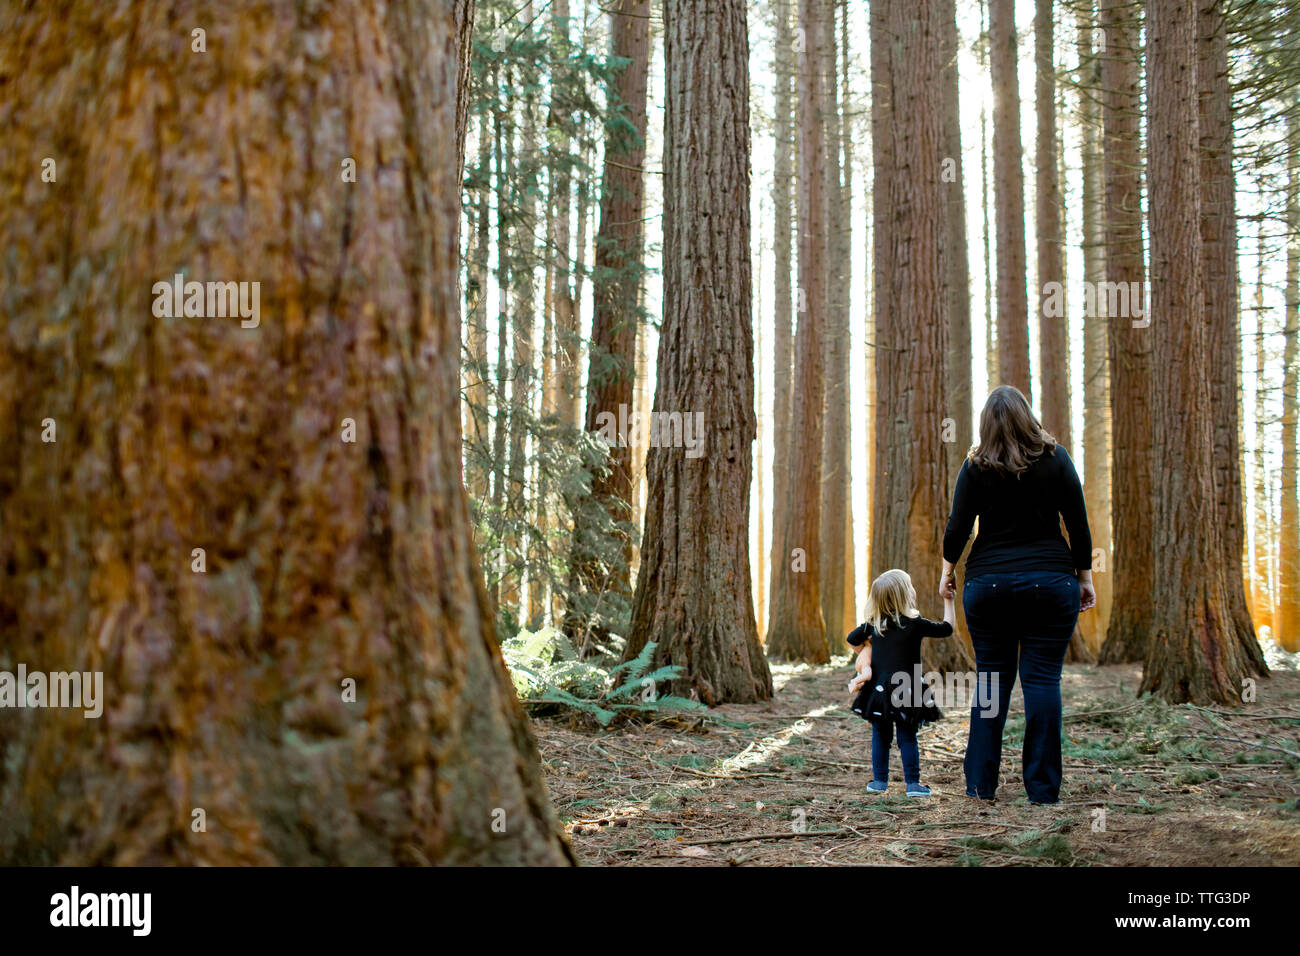 Mother and daughter look up in awe of Redwood forest. - Stock Image